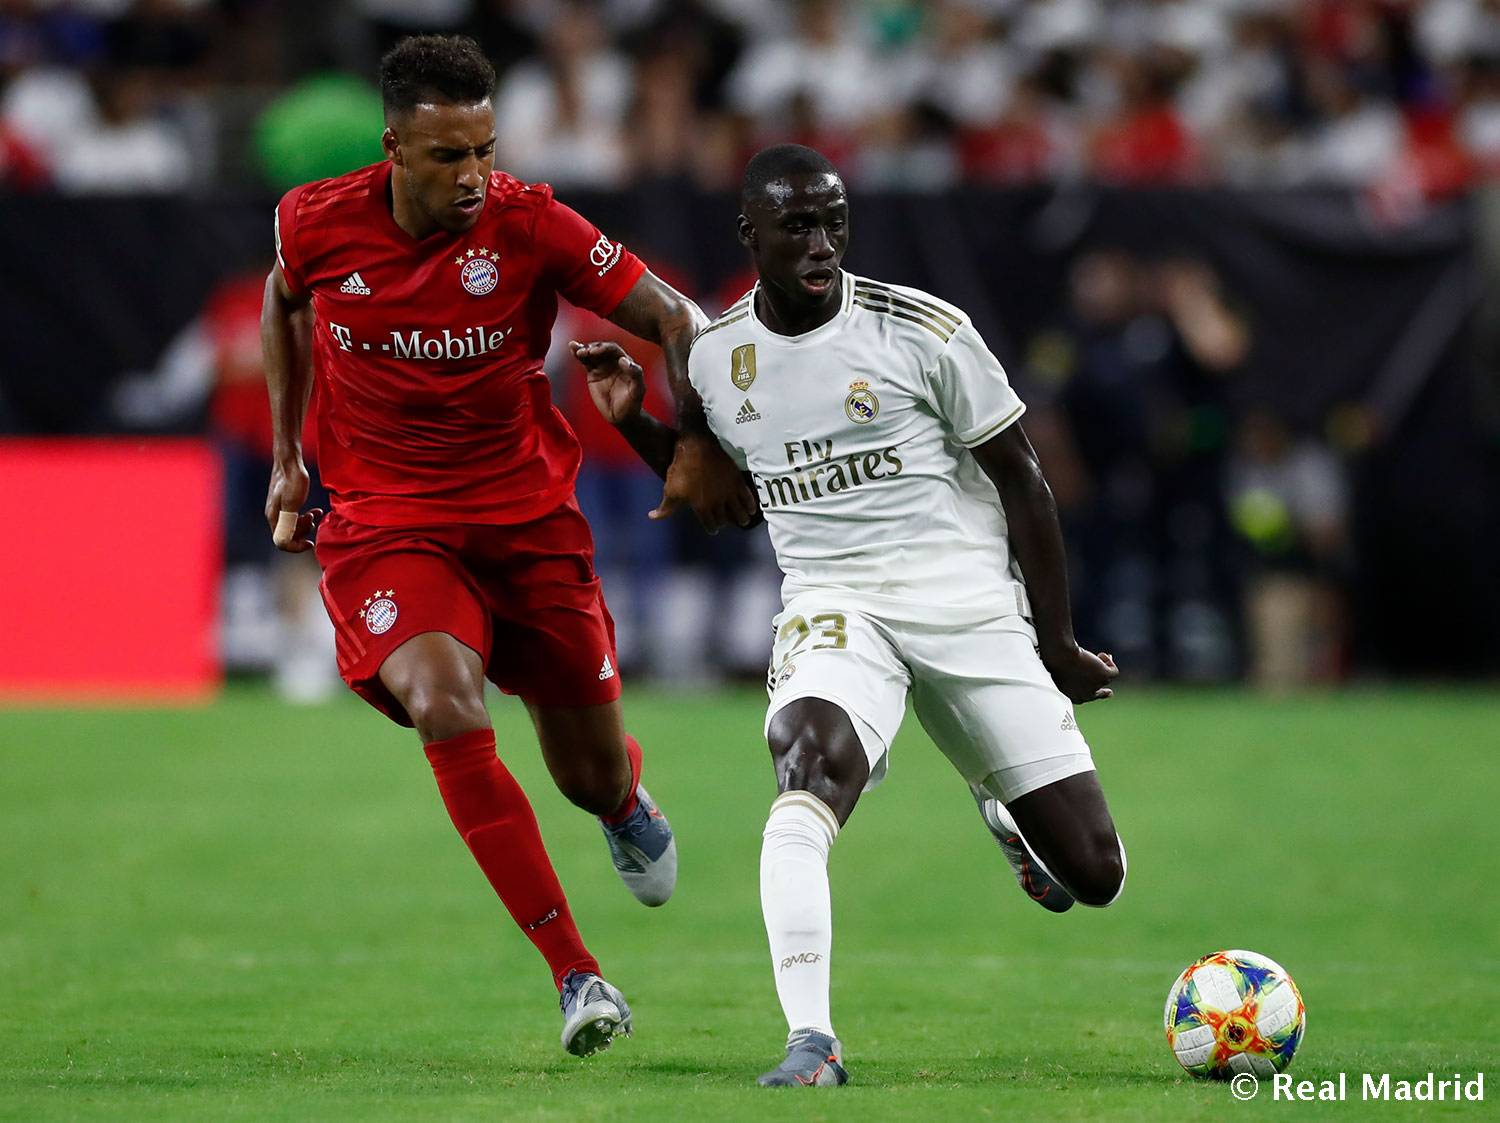 Real Madrid - Debut de Mendy con el Real Madrid - 21-07-2019